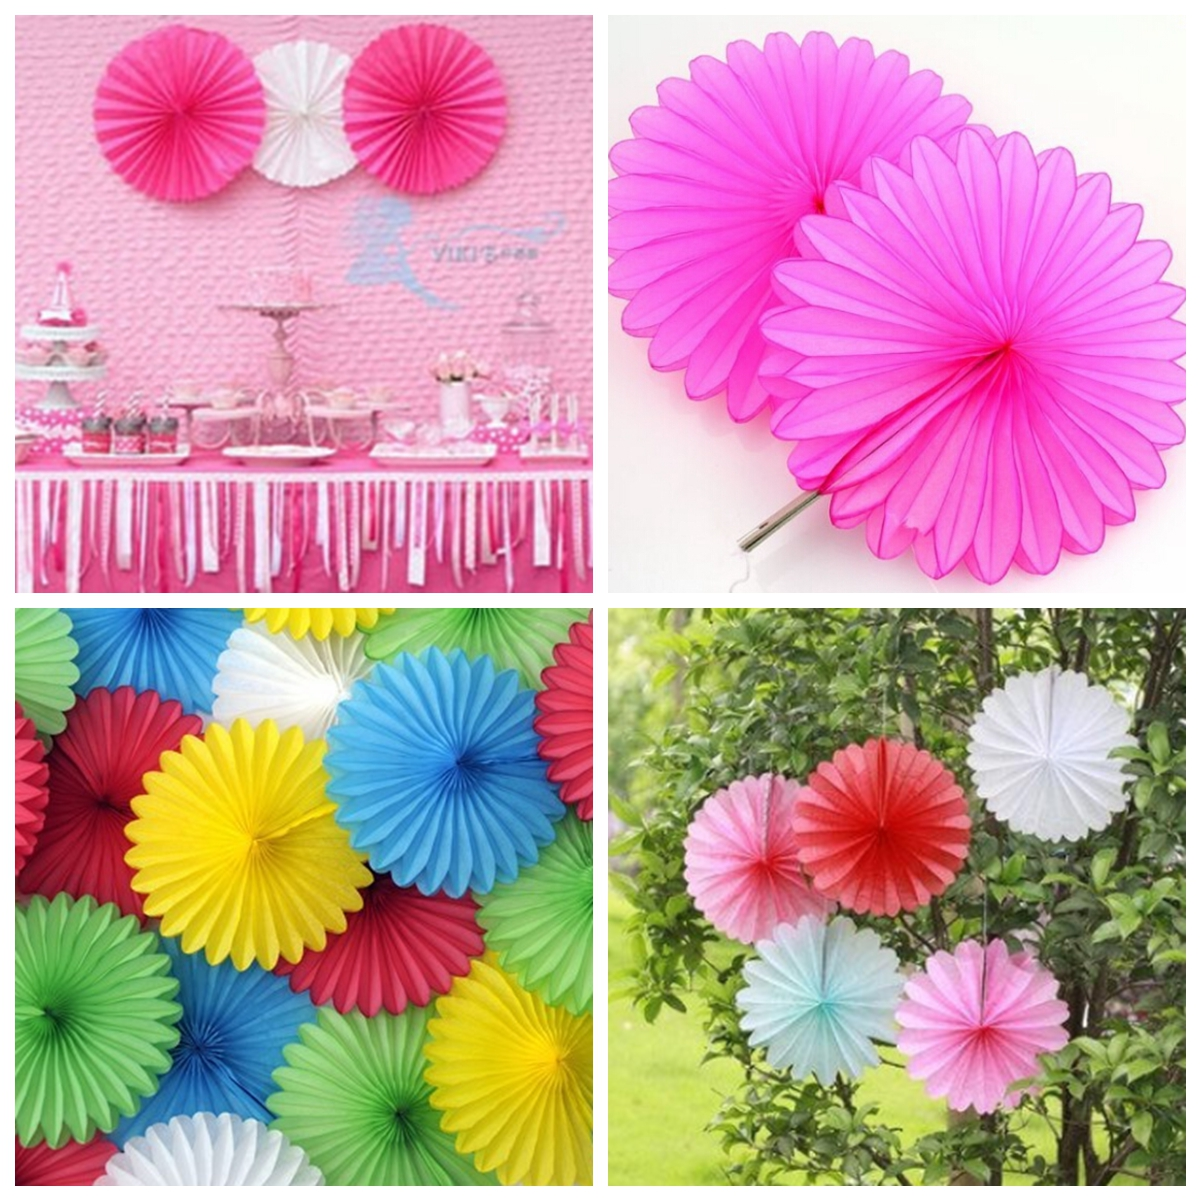 15cm 6'' Hanging Tissue Fan Paper Pom Poms Party Balls Wedding C